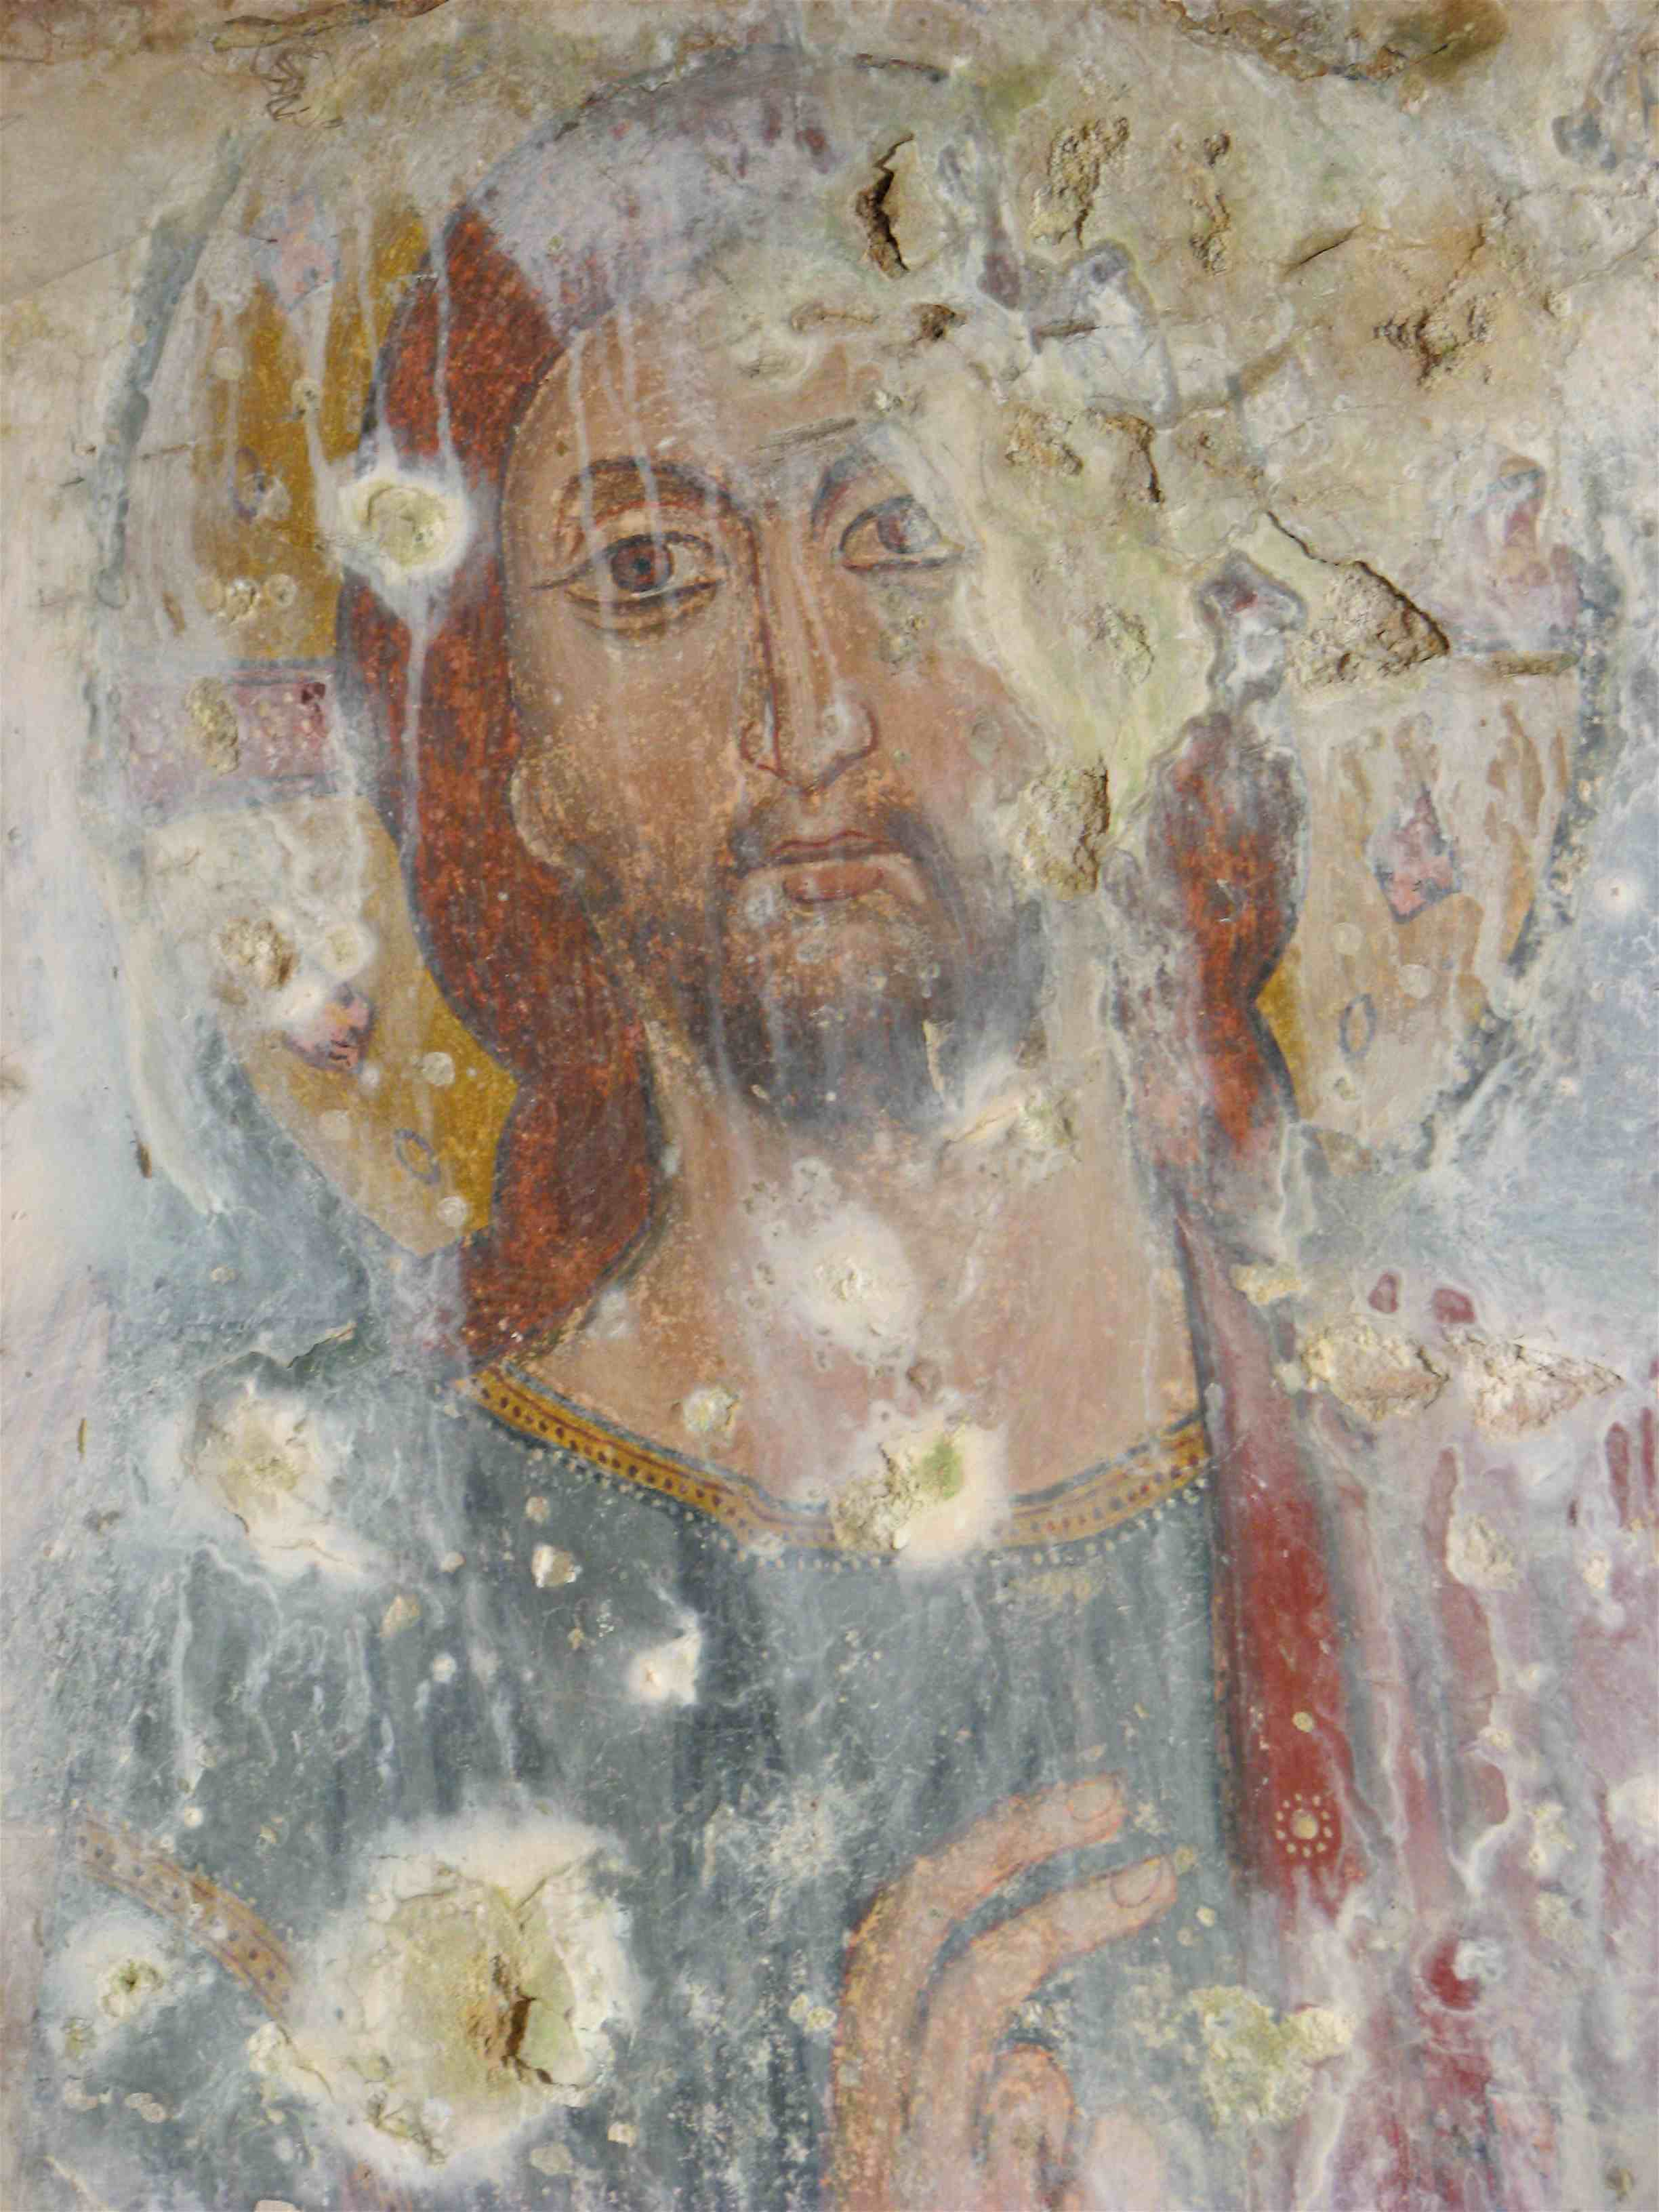 Byzantine Fresco in the caves of Italy